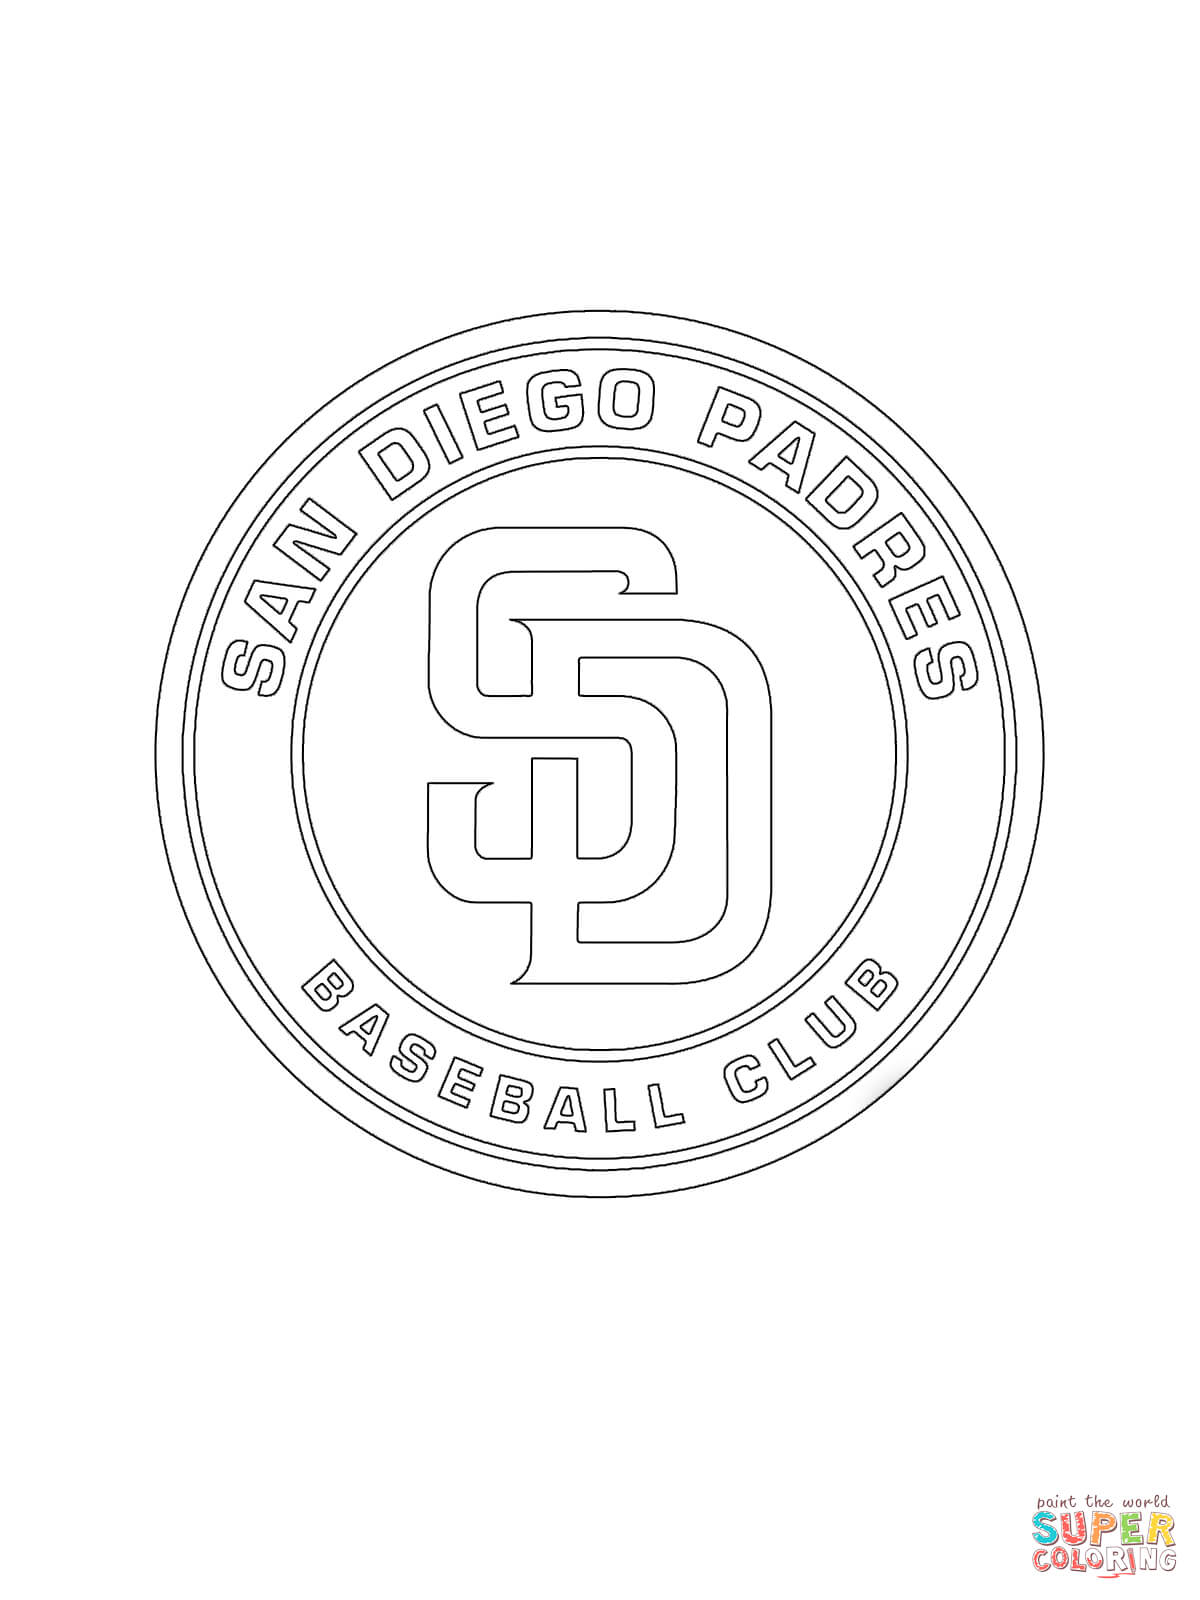 san diego padres logo coloring page free printable coloring pages